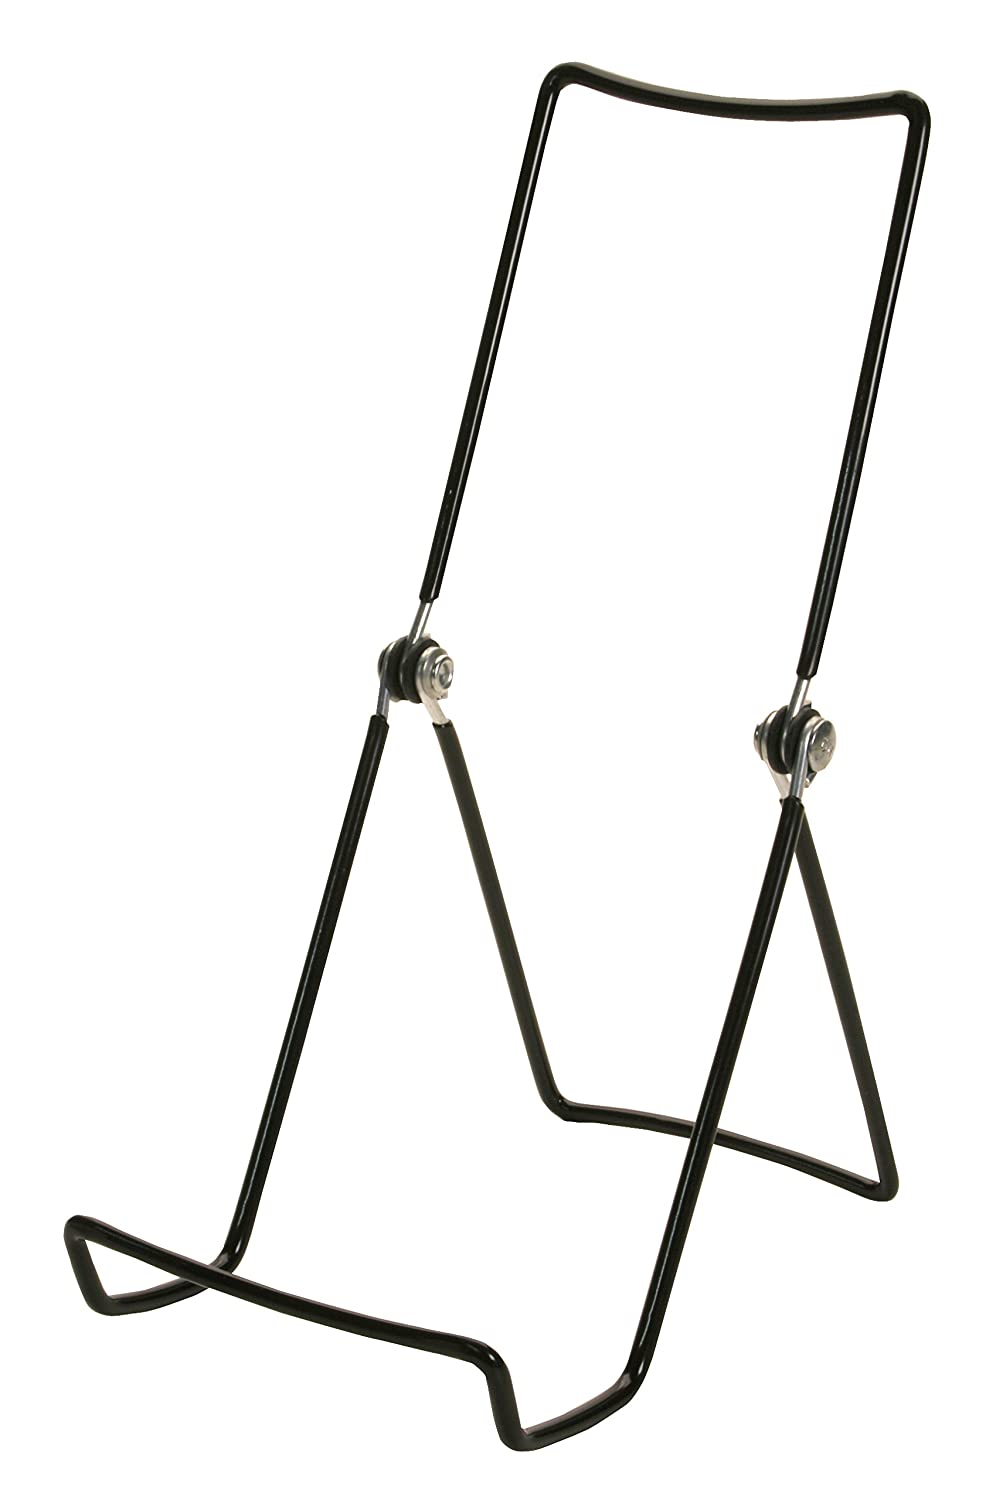 Gibson Holders 3 6ACB Adjustable Wire Display Easels- 3.75 W x 8 H with 2.25 display ledge, Black